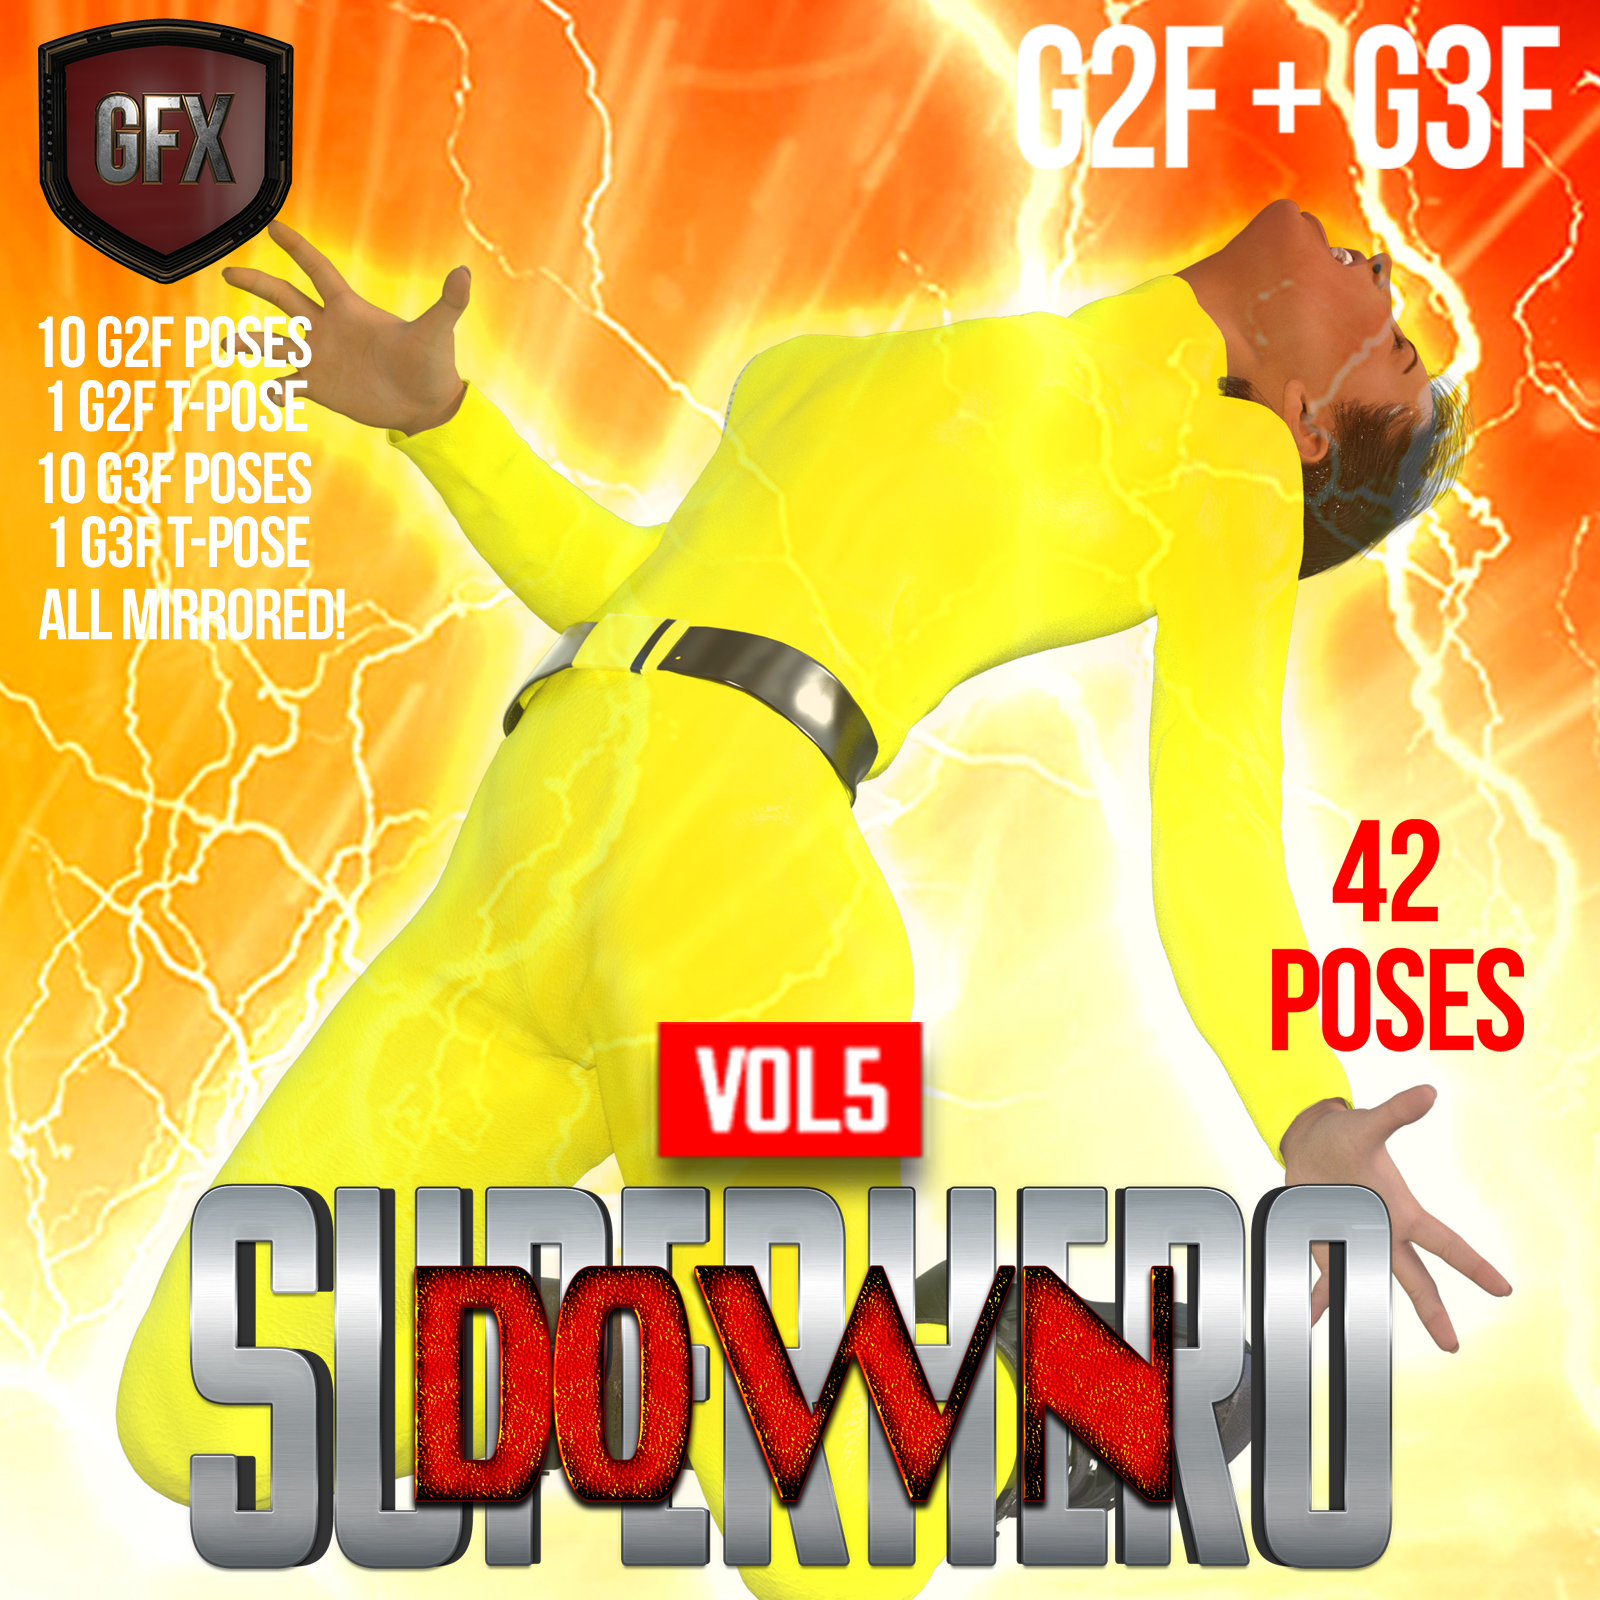 SuperHero Down for G2F and G3F Volume 5